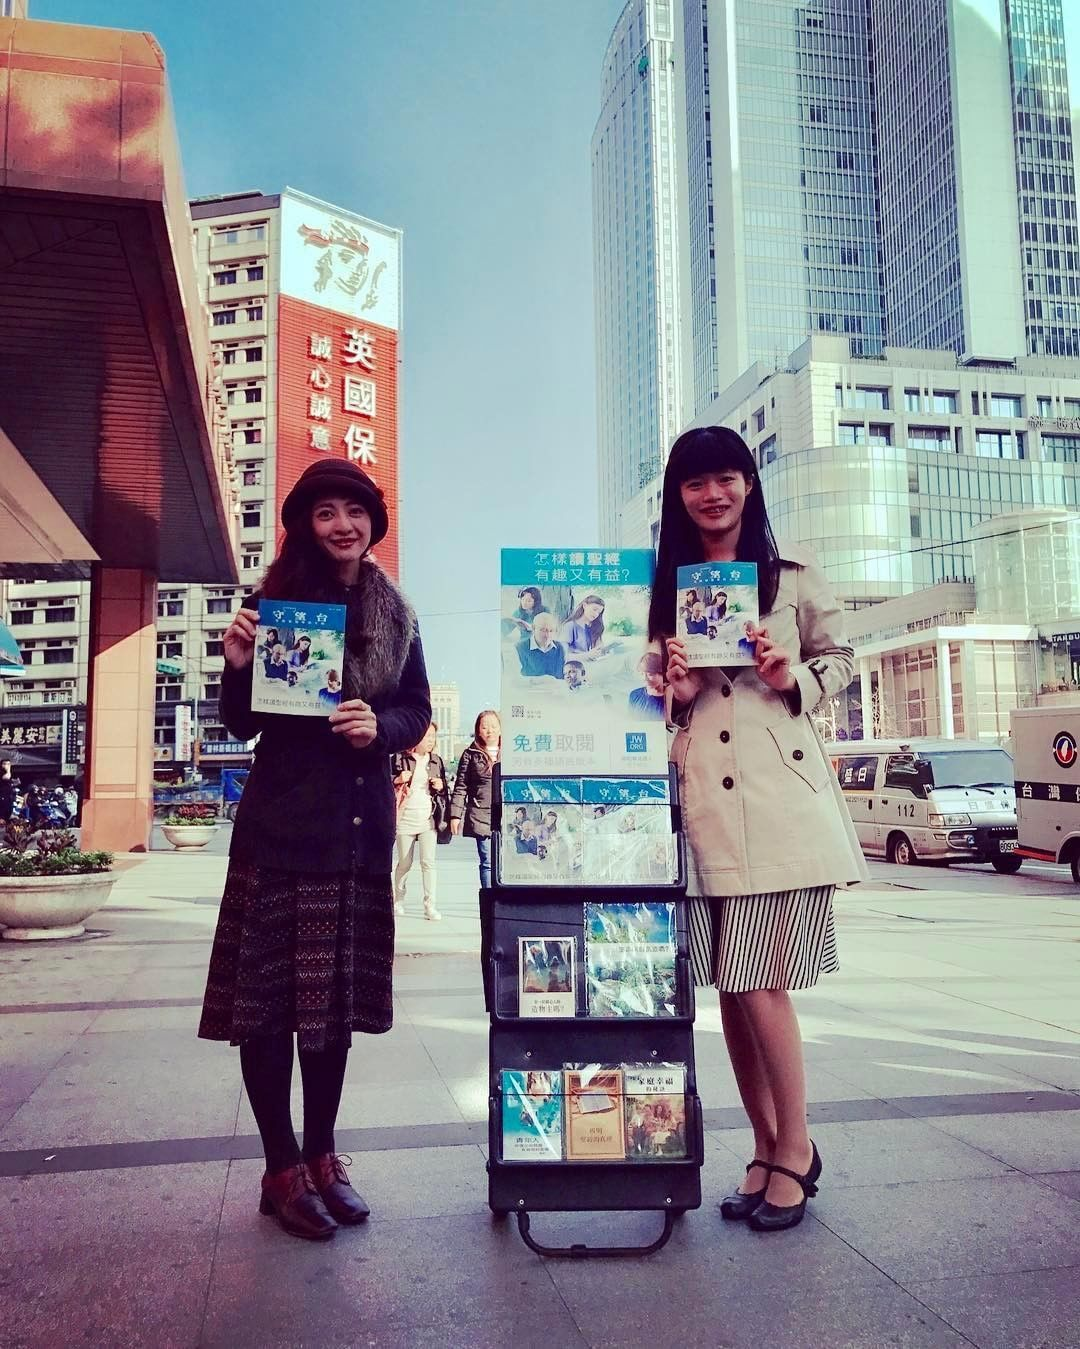 "4,045 Likes, 15 Comments - JW Gift & Art Gallery (@ministrygallery) on Instagram: ""Public witnessing in Taipei, Taiwan.  Shared by @iwaichristina  #jw #jworg #cartwitnessing…"""